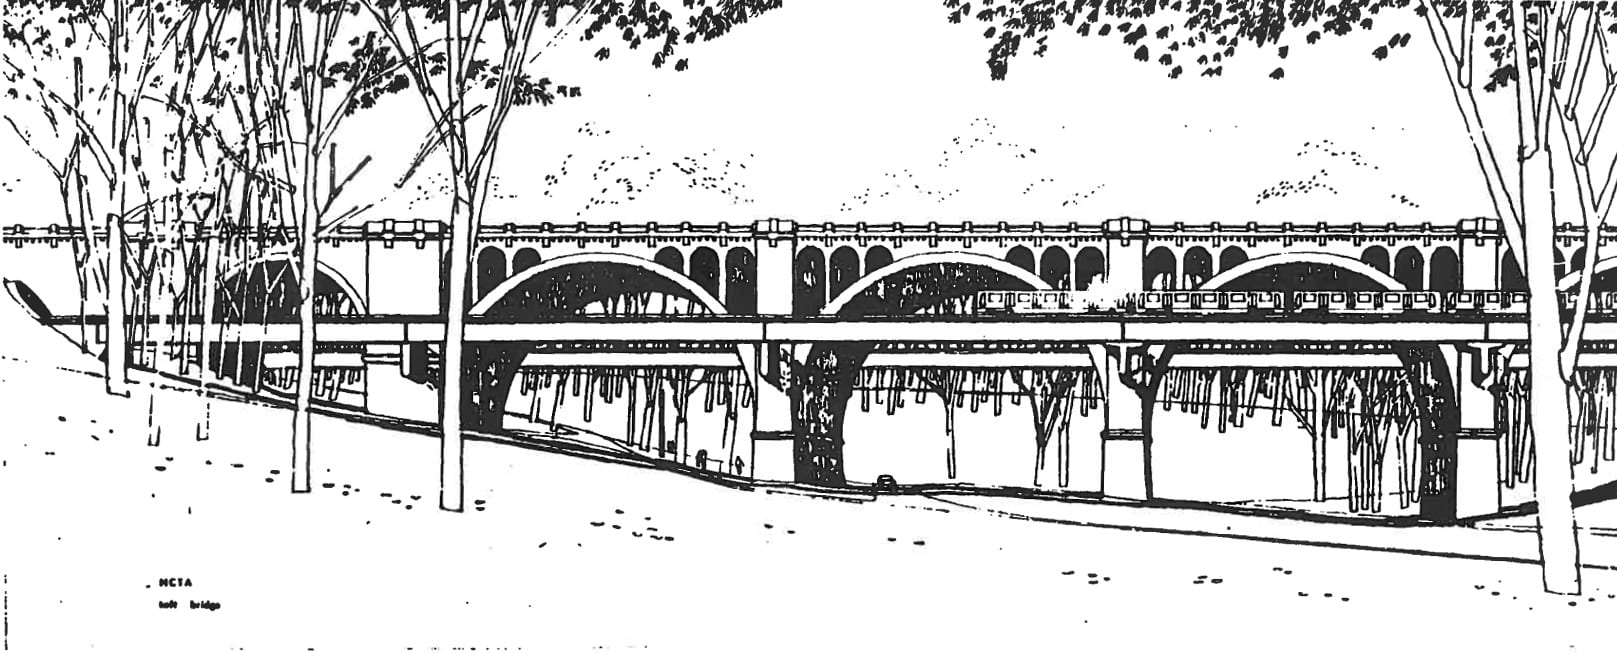 Metro's Taft Bridge Plan with Tracks on Side